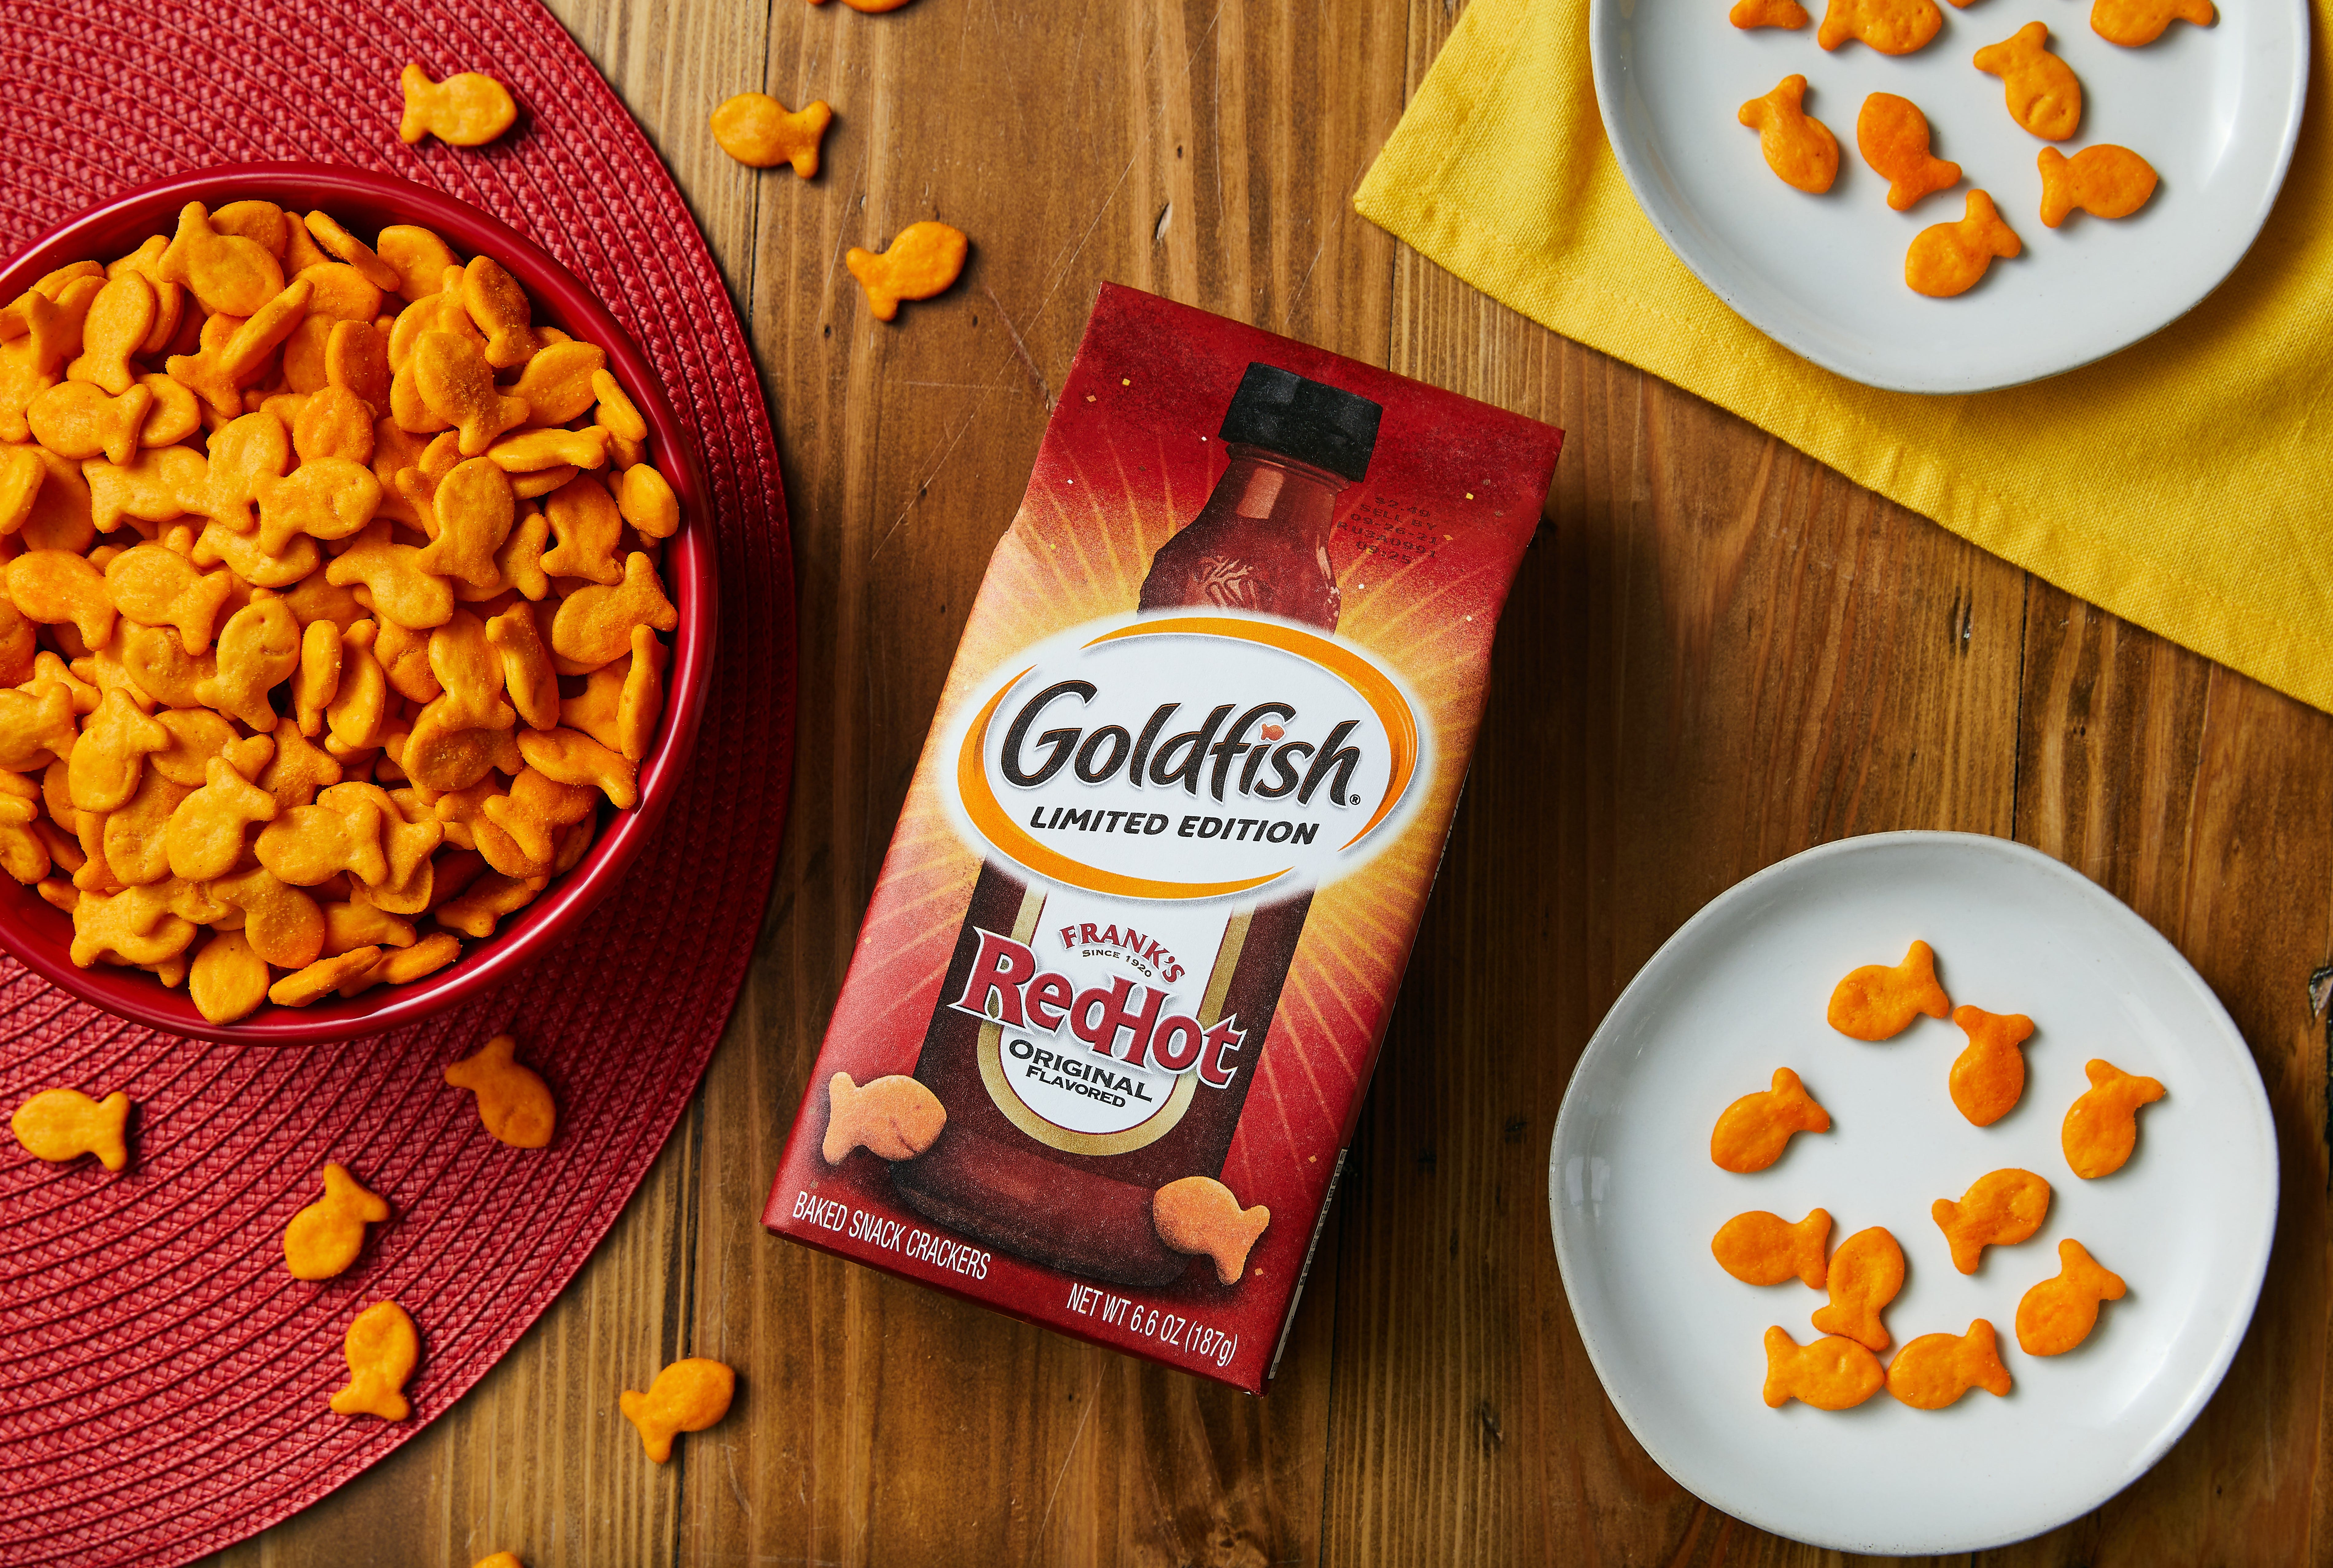 Goldfish teams up with Frank's RedHot for limited-edition spicy crackers. How to win a free bag